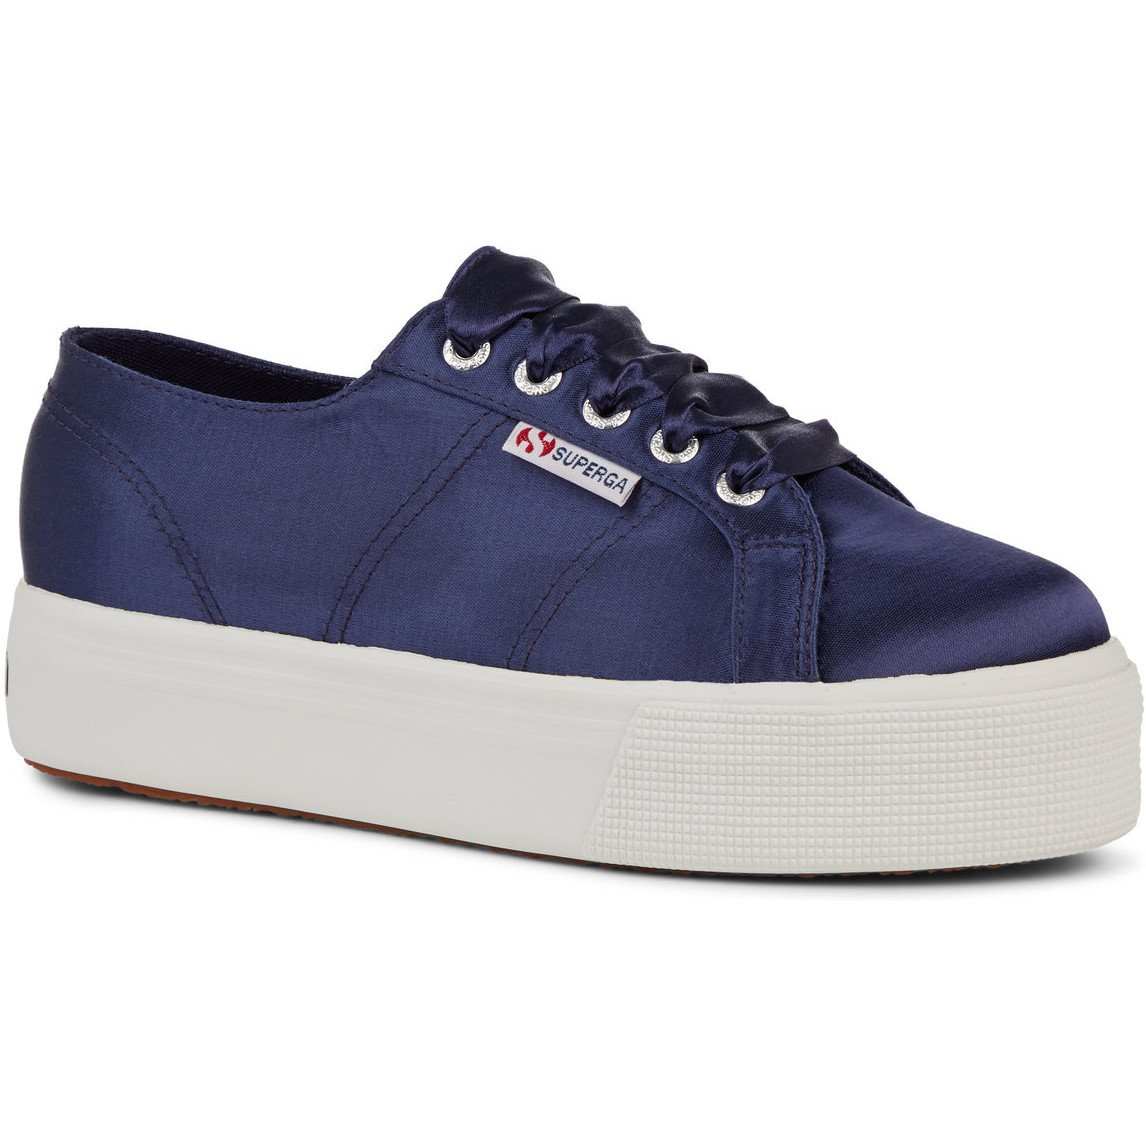 Superga 2790 Satin Navy Womens B01M5GE6XI 2790 Shoes Blue Navy 12b561f - latesttechnology.space